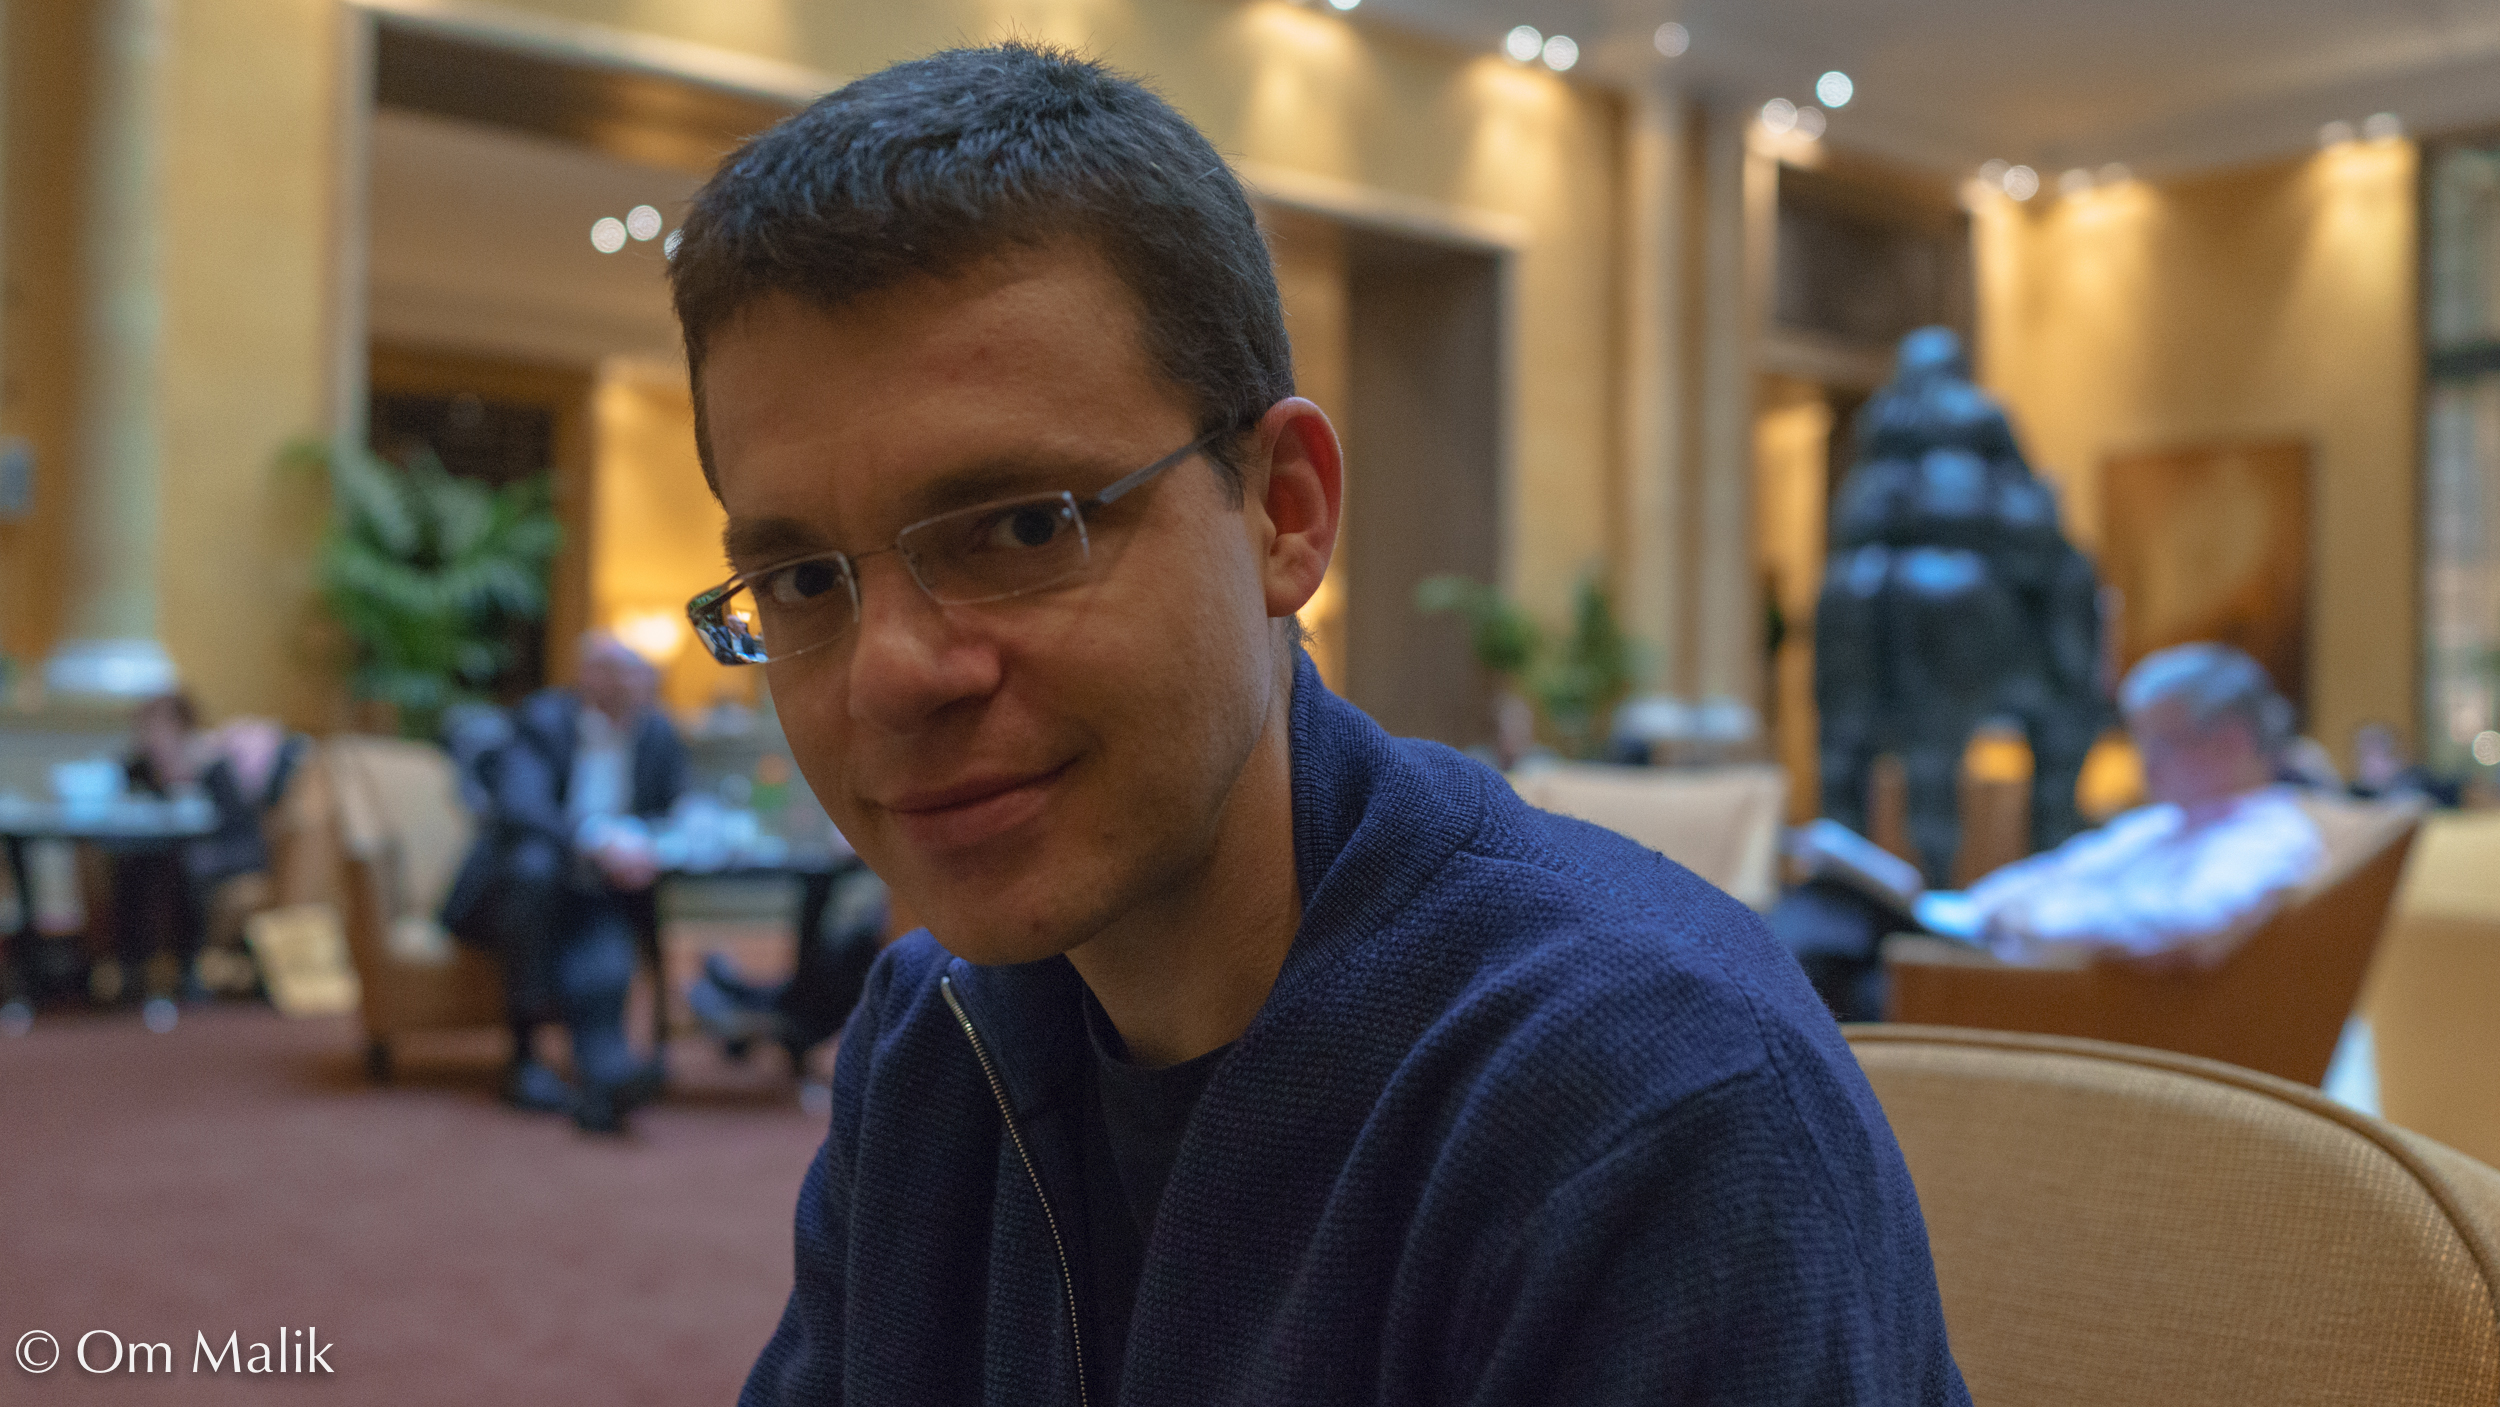 PayPal co-founder and HFV CEO Max Levchin at DLD 2013 Conference in Munich Photo by Om Malik